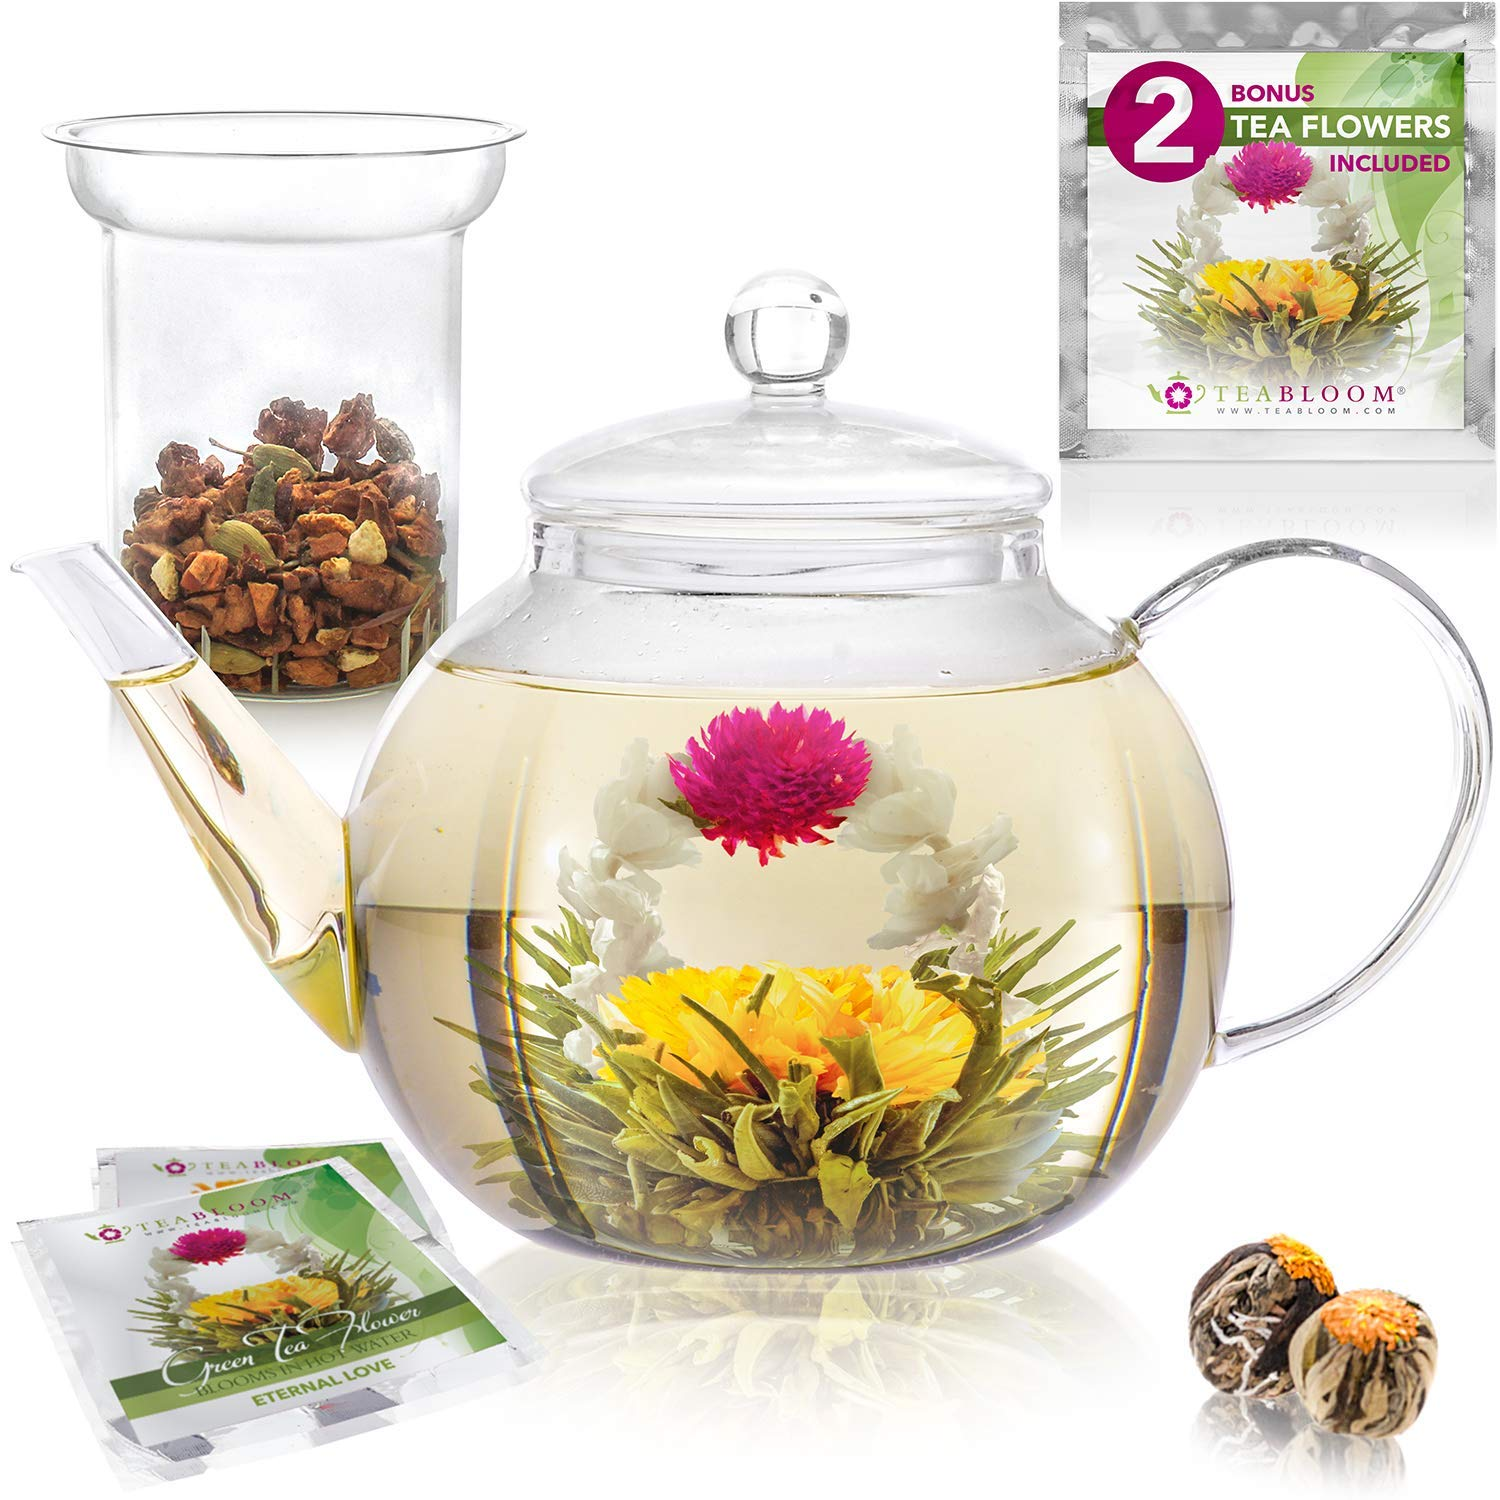 Teabloom Stovetop & Microwave Safe Glass Teapot (34-40oz/1000-1200ml) with Removable Loose Tea Glass Infuser - Includes 2 Blooming Teas - Premium Quality Teapot Gift Set by Teabloom